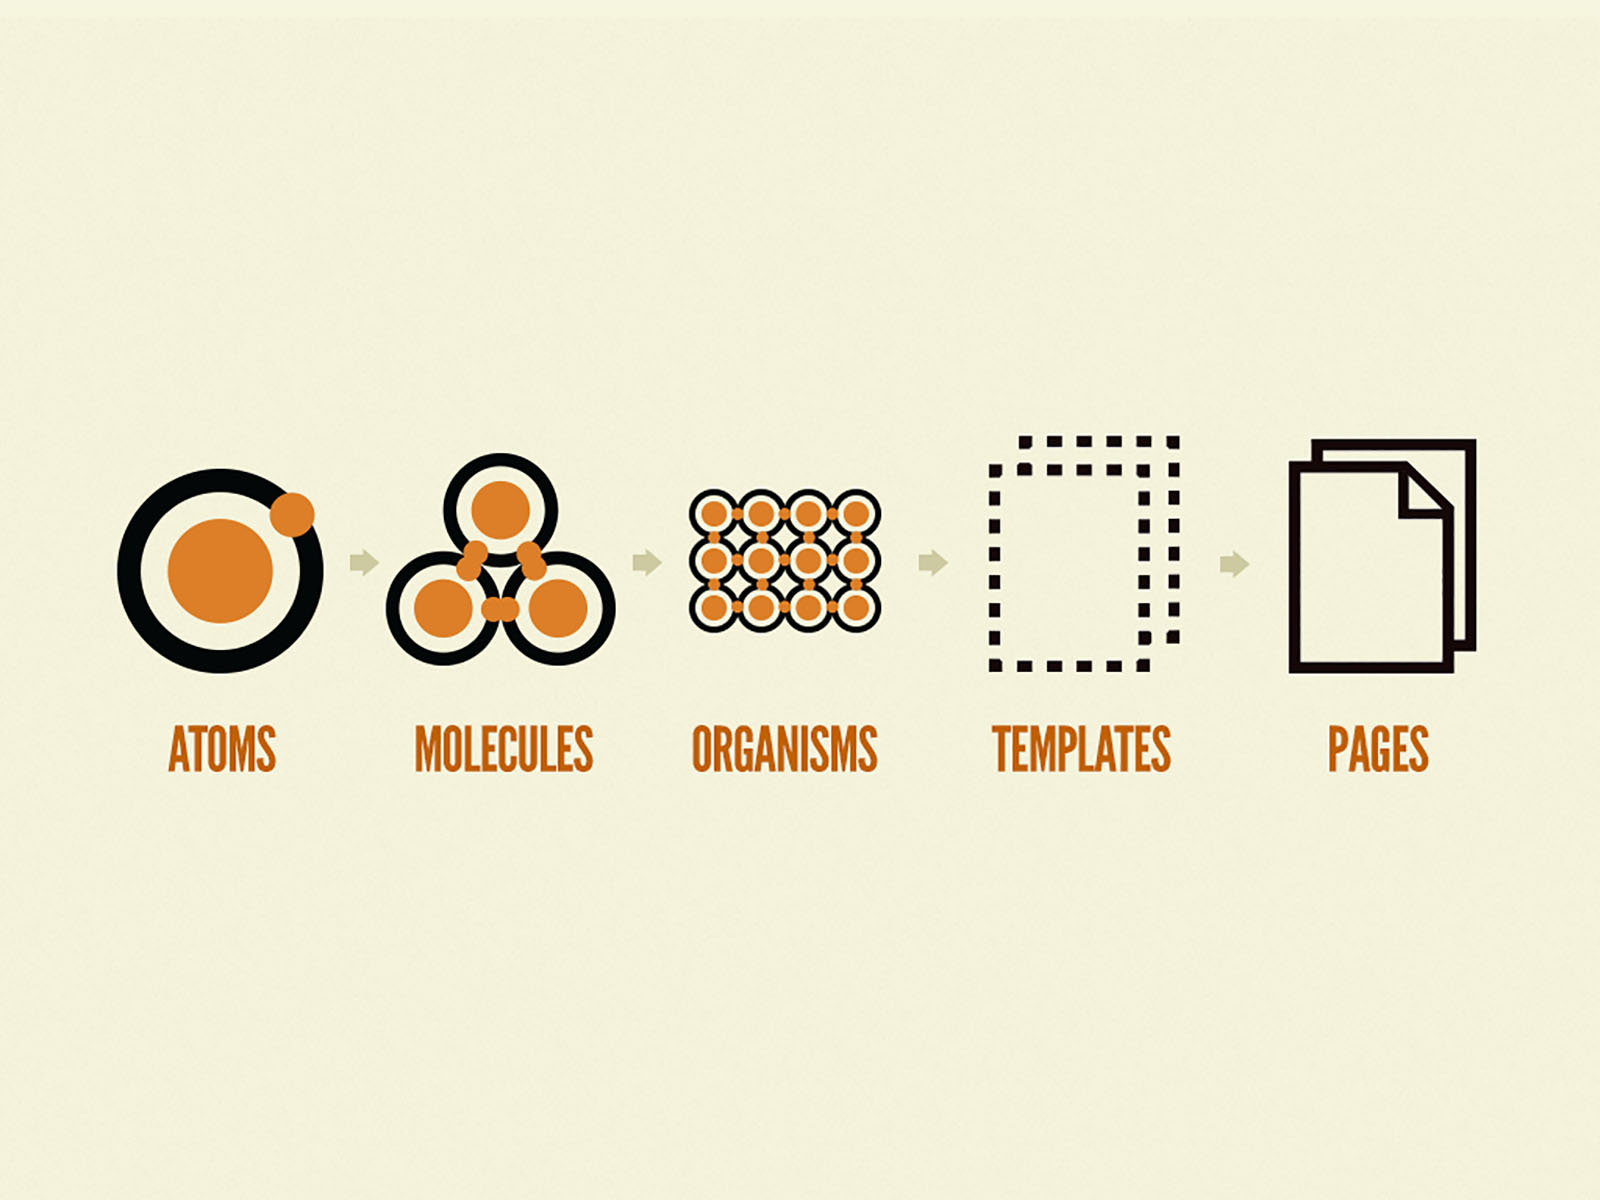 Atomic design graphic showing atoms, molecules, organisms, templates and pages.